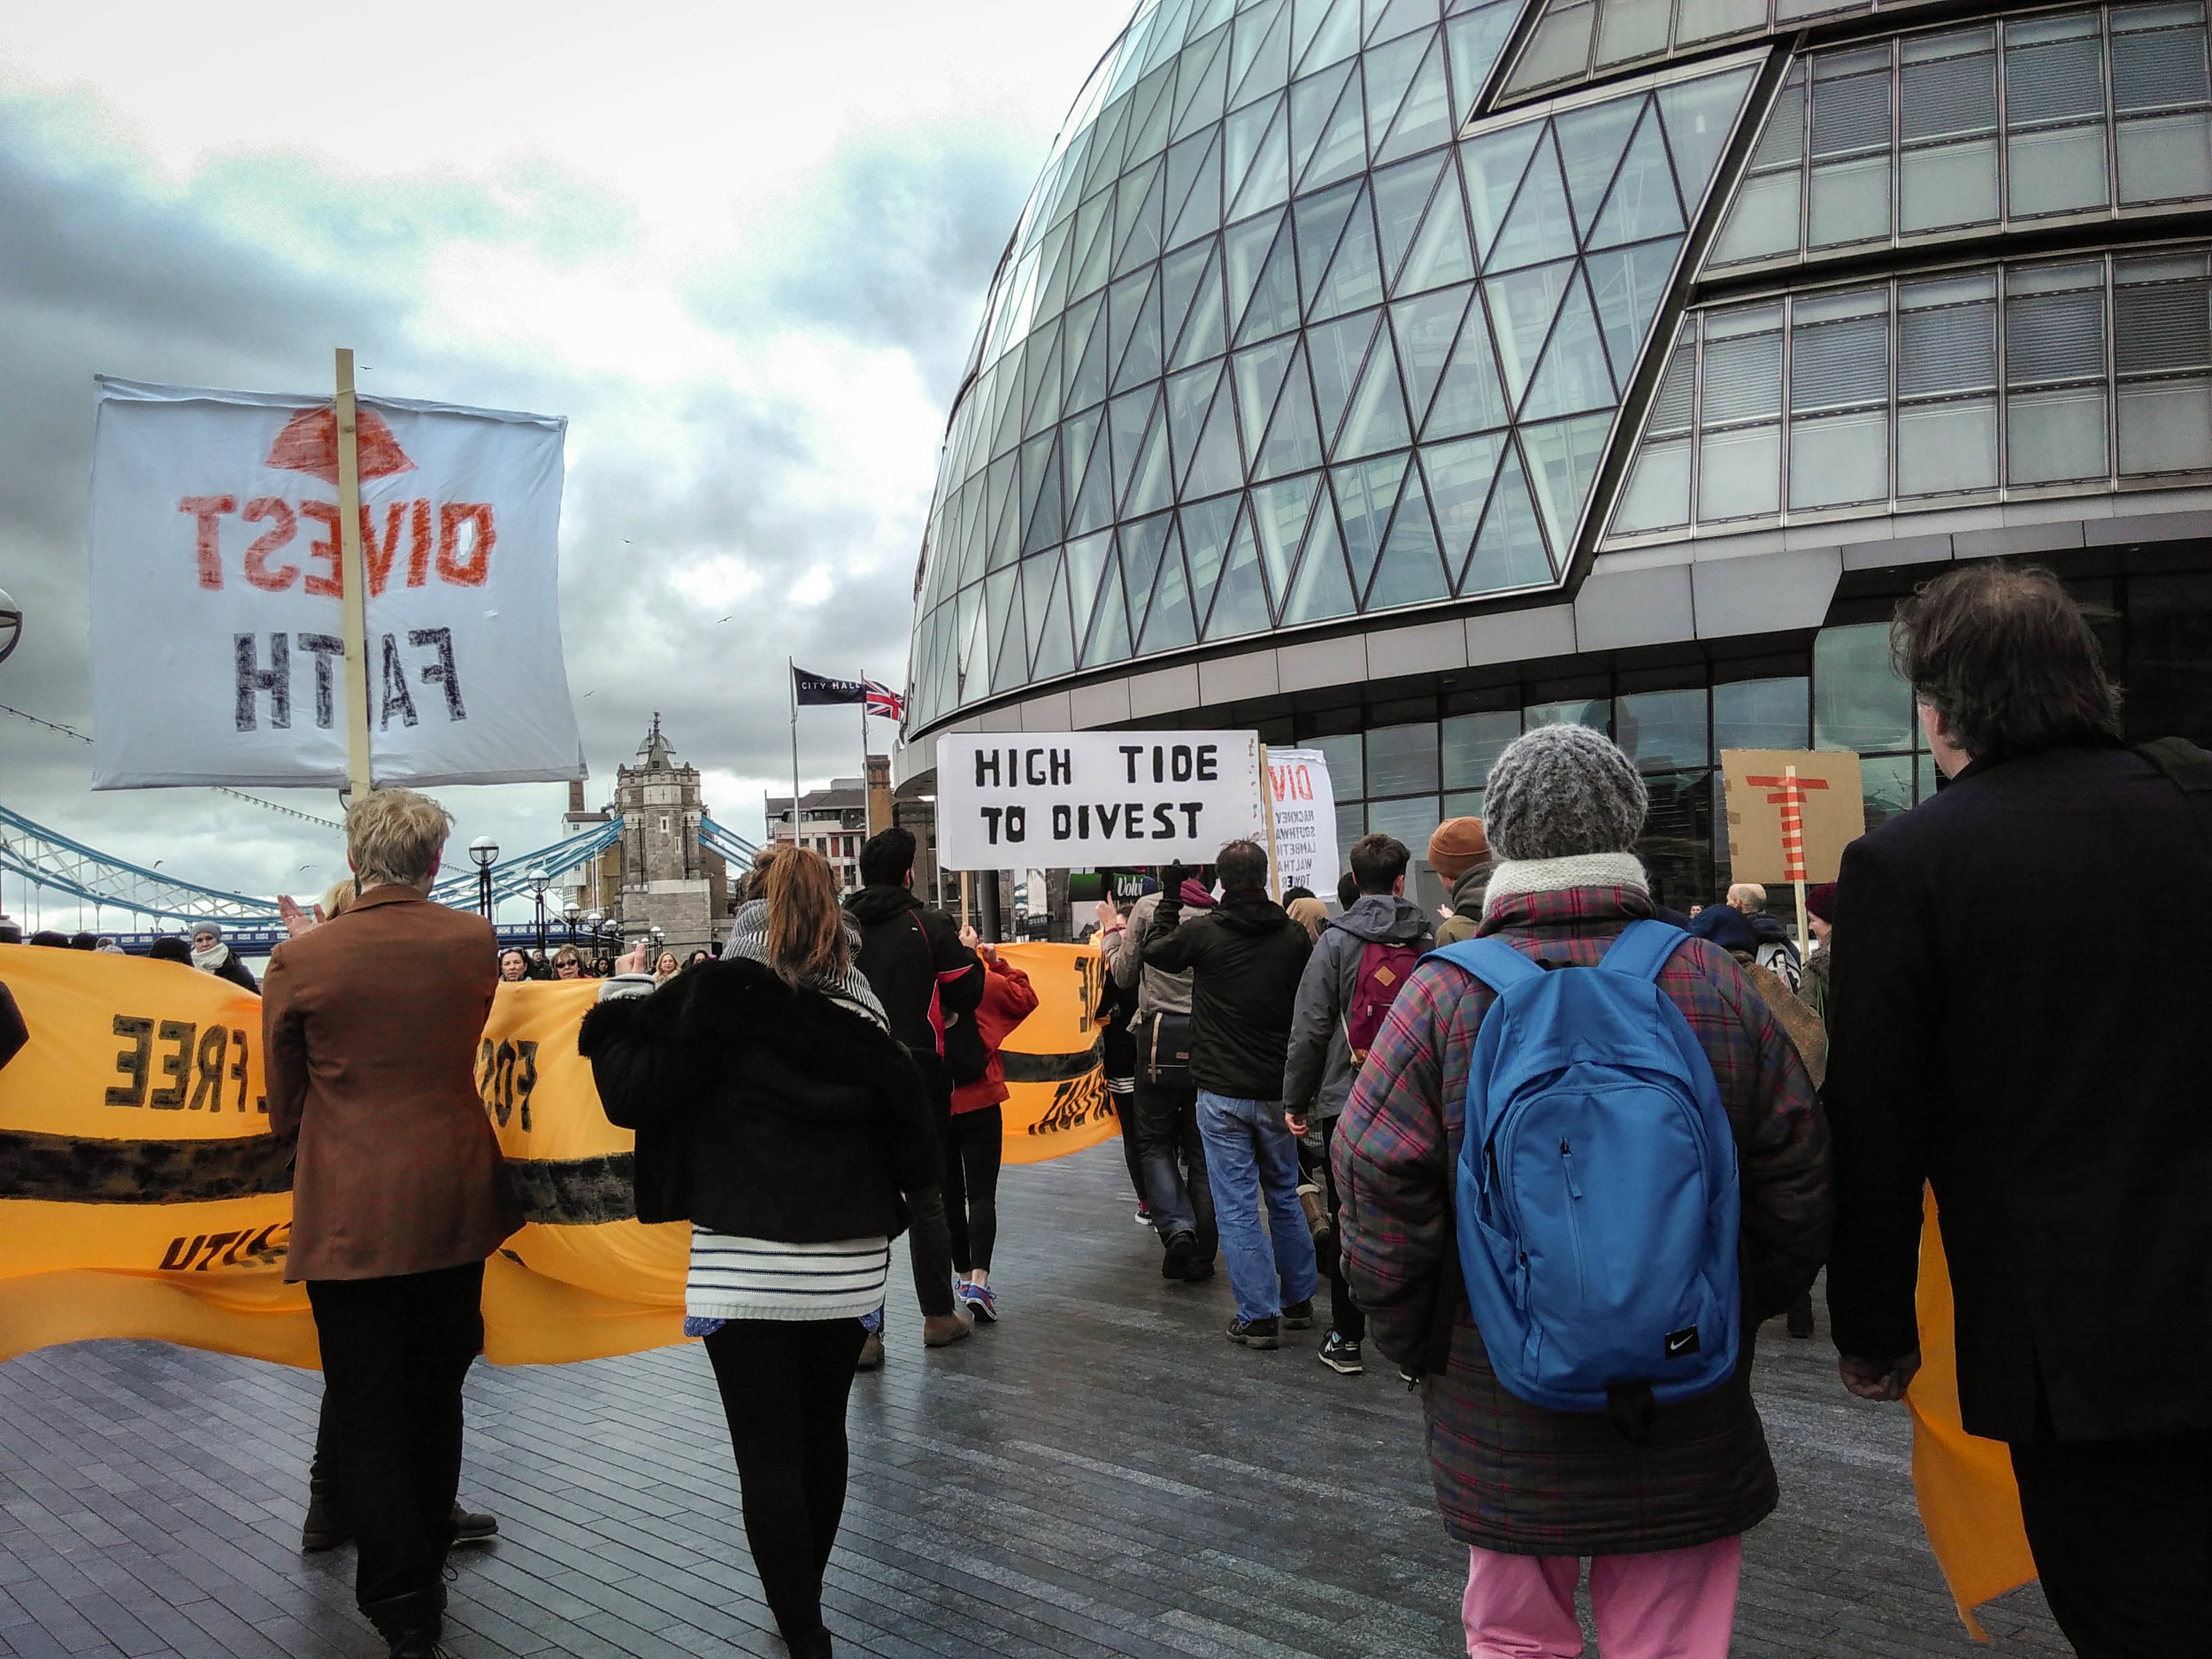 Divest London demo at City Hall - February 2016